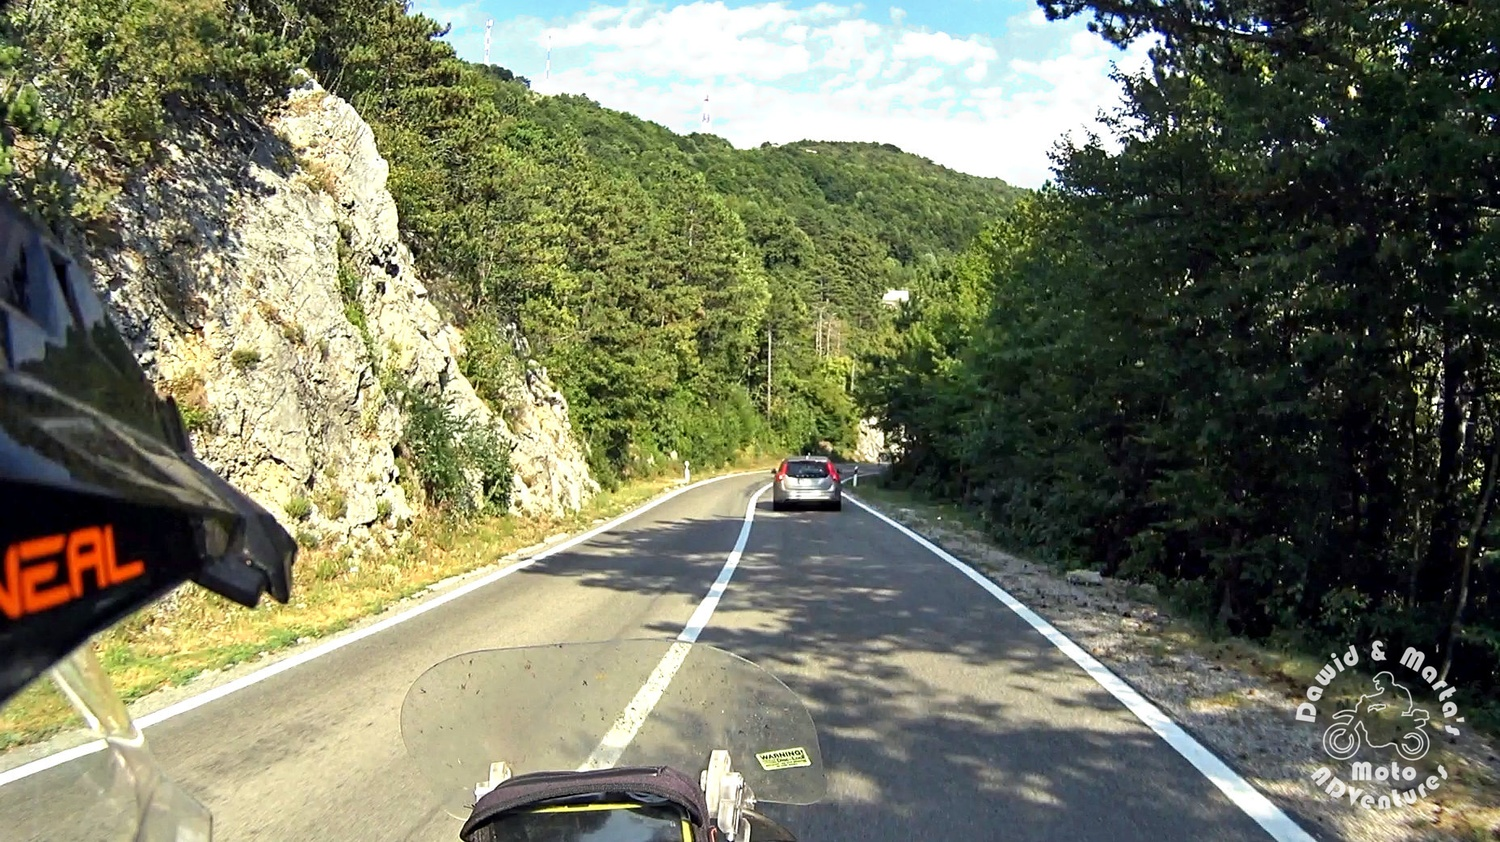 The Croatia road 23 is tightly surrounded by forests and mountains